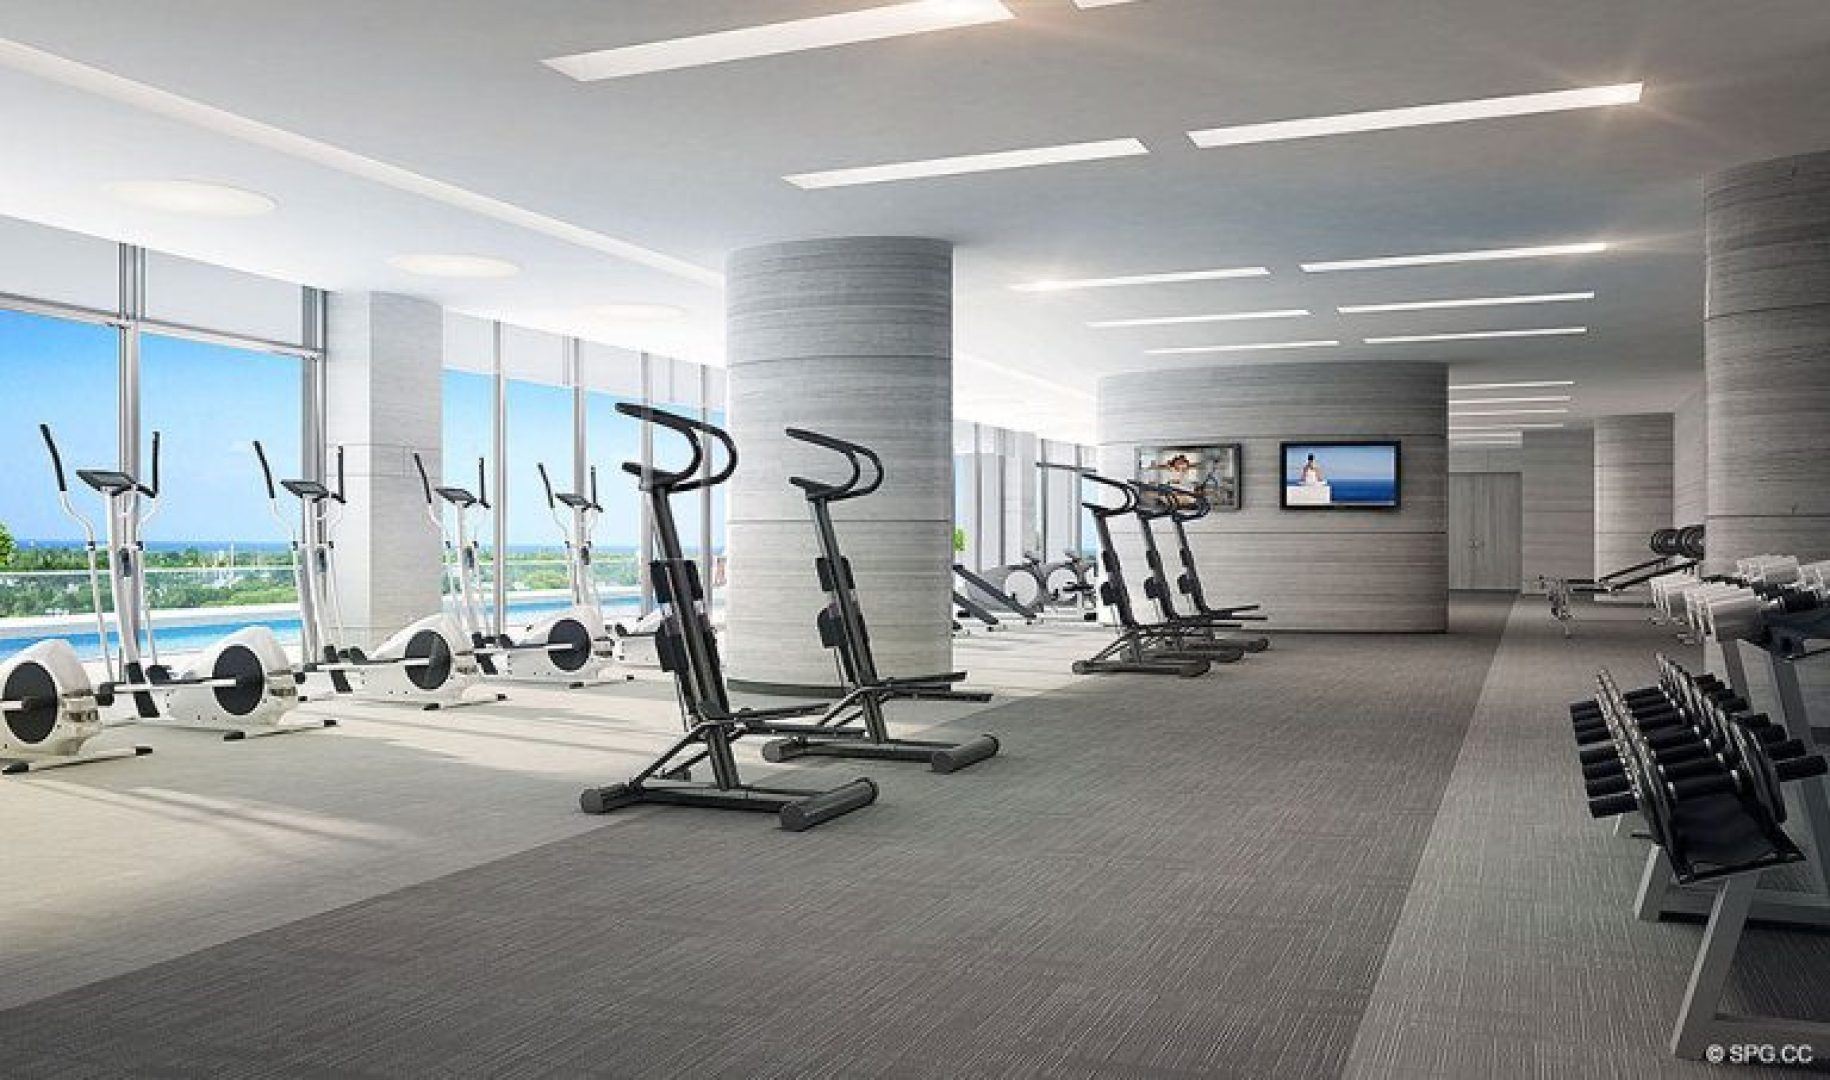 Fitness Center at Riva, Luxury Waterfront Condos in Fort Lauderdale, Florida 33304.